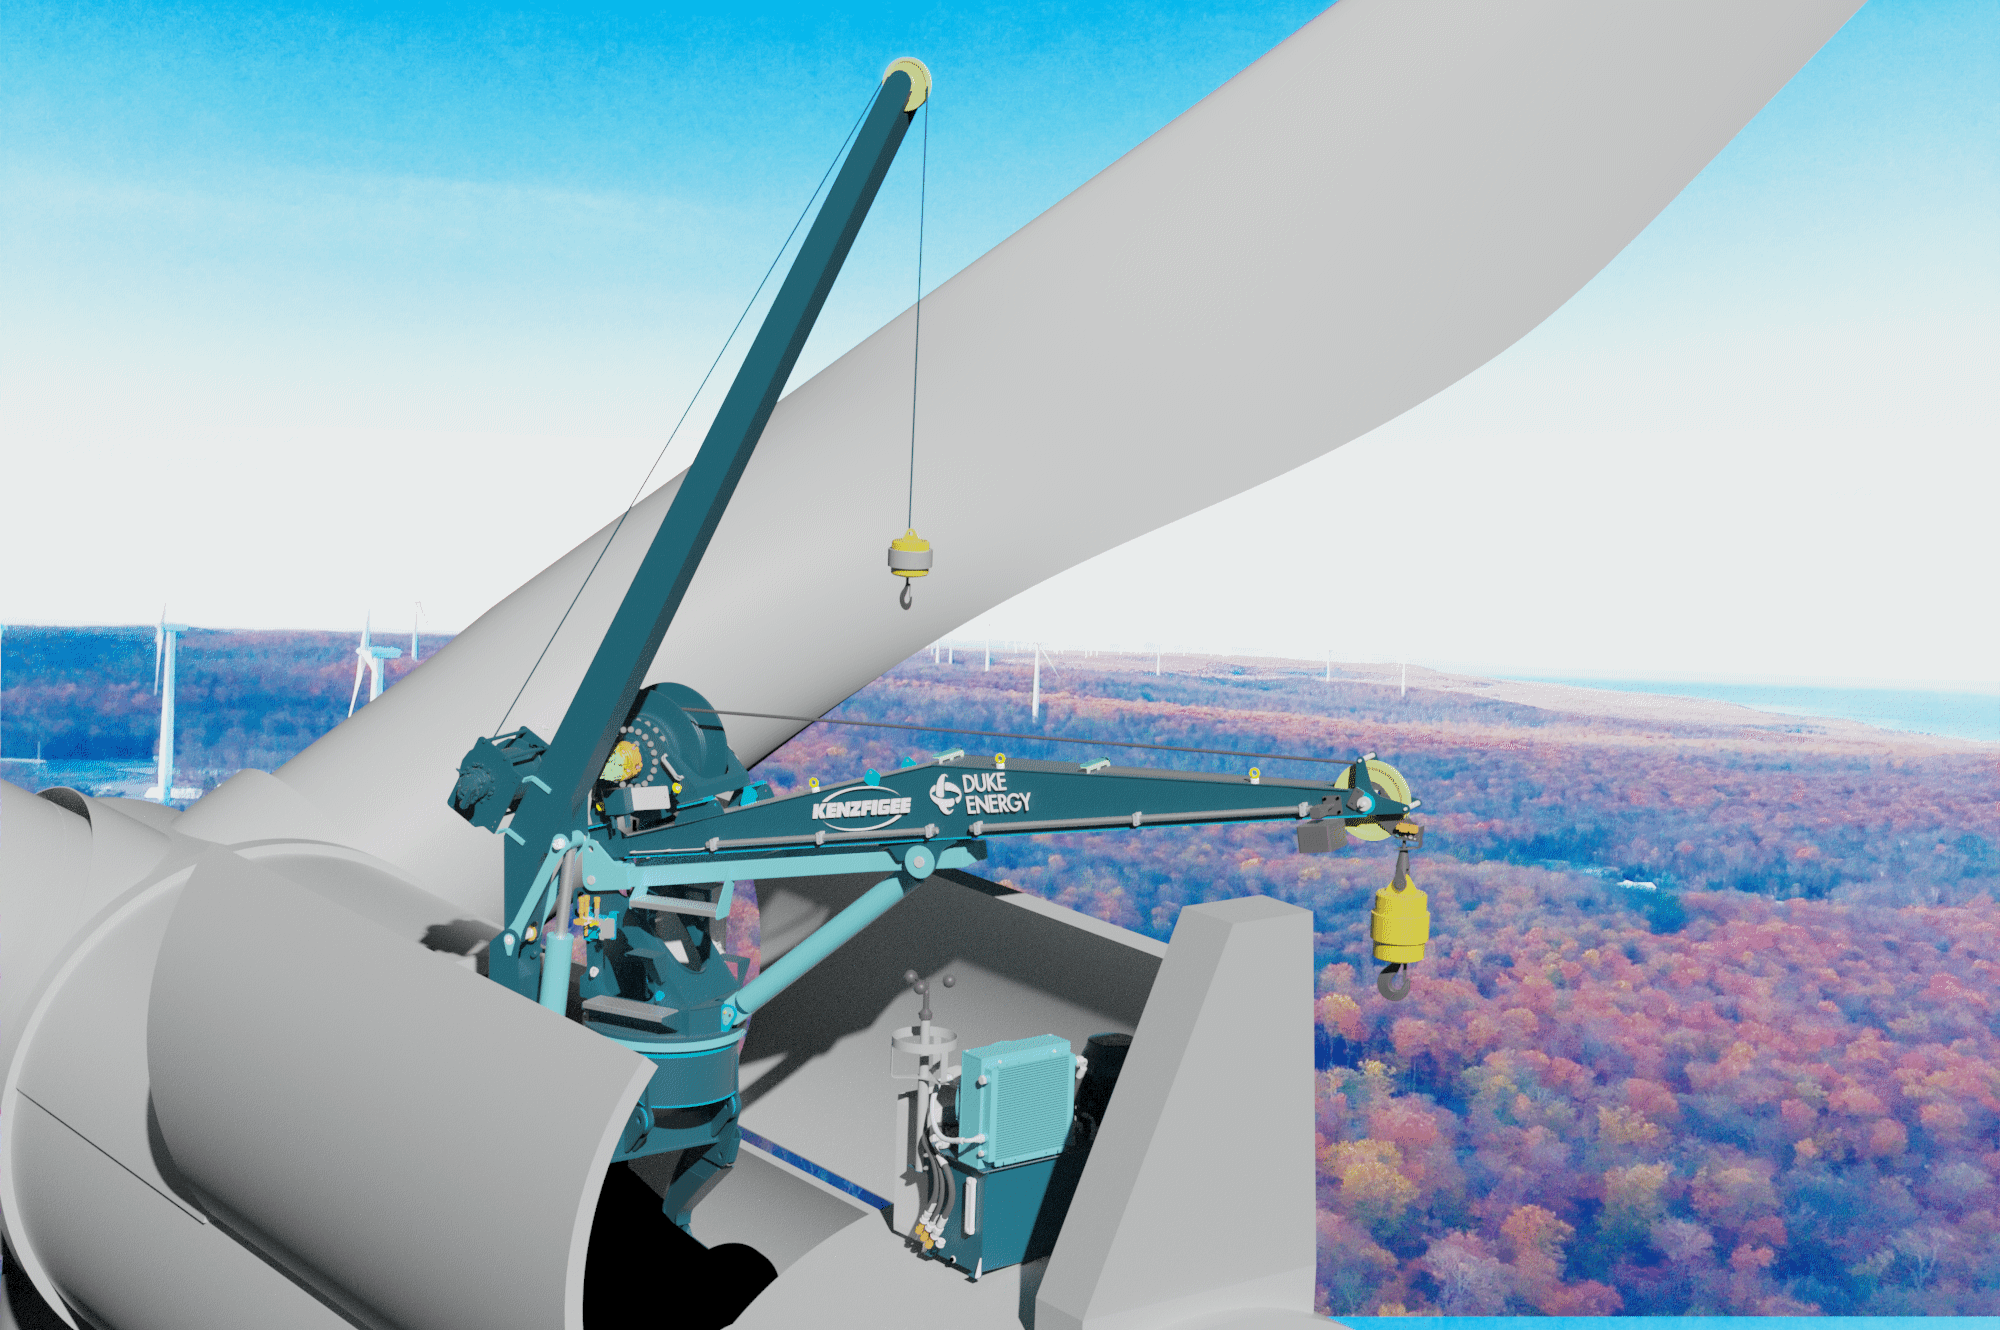 KenzFigee signs contract with Duke Energy for delivery of first GenHook LT up-tower crane